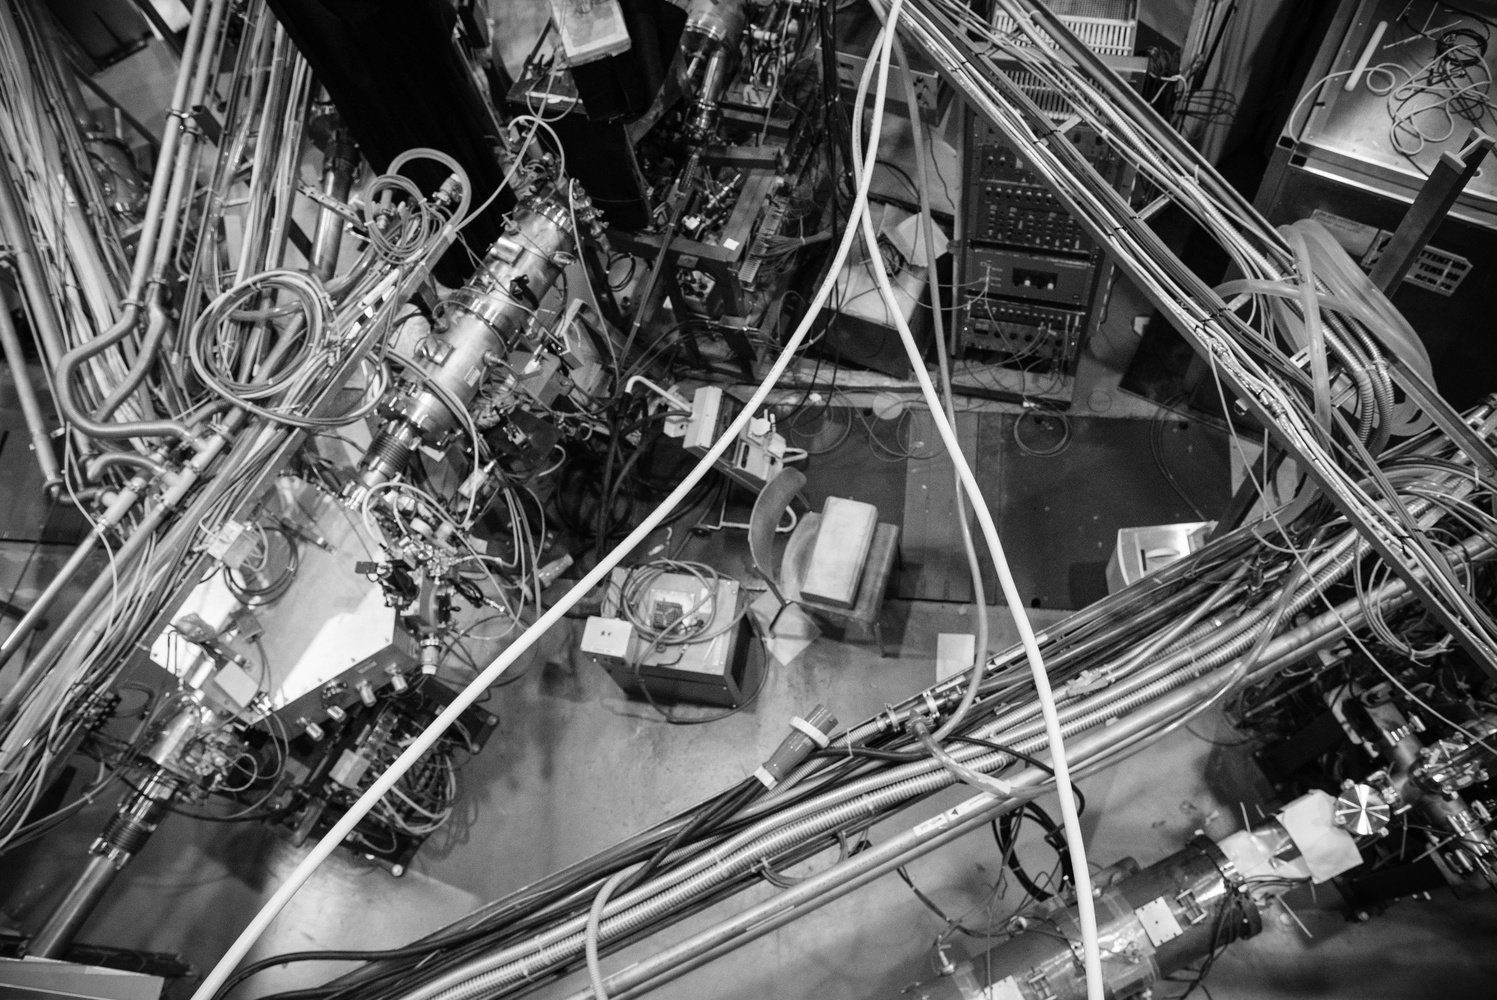 A view of an ISOLDE experiment from above - Photo by Mask Mae